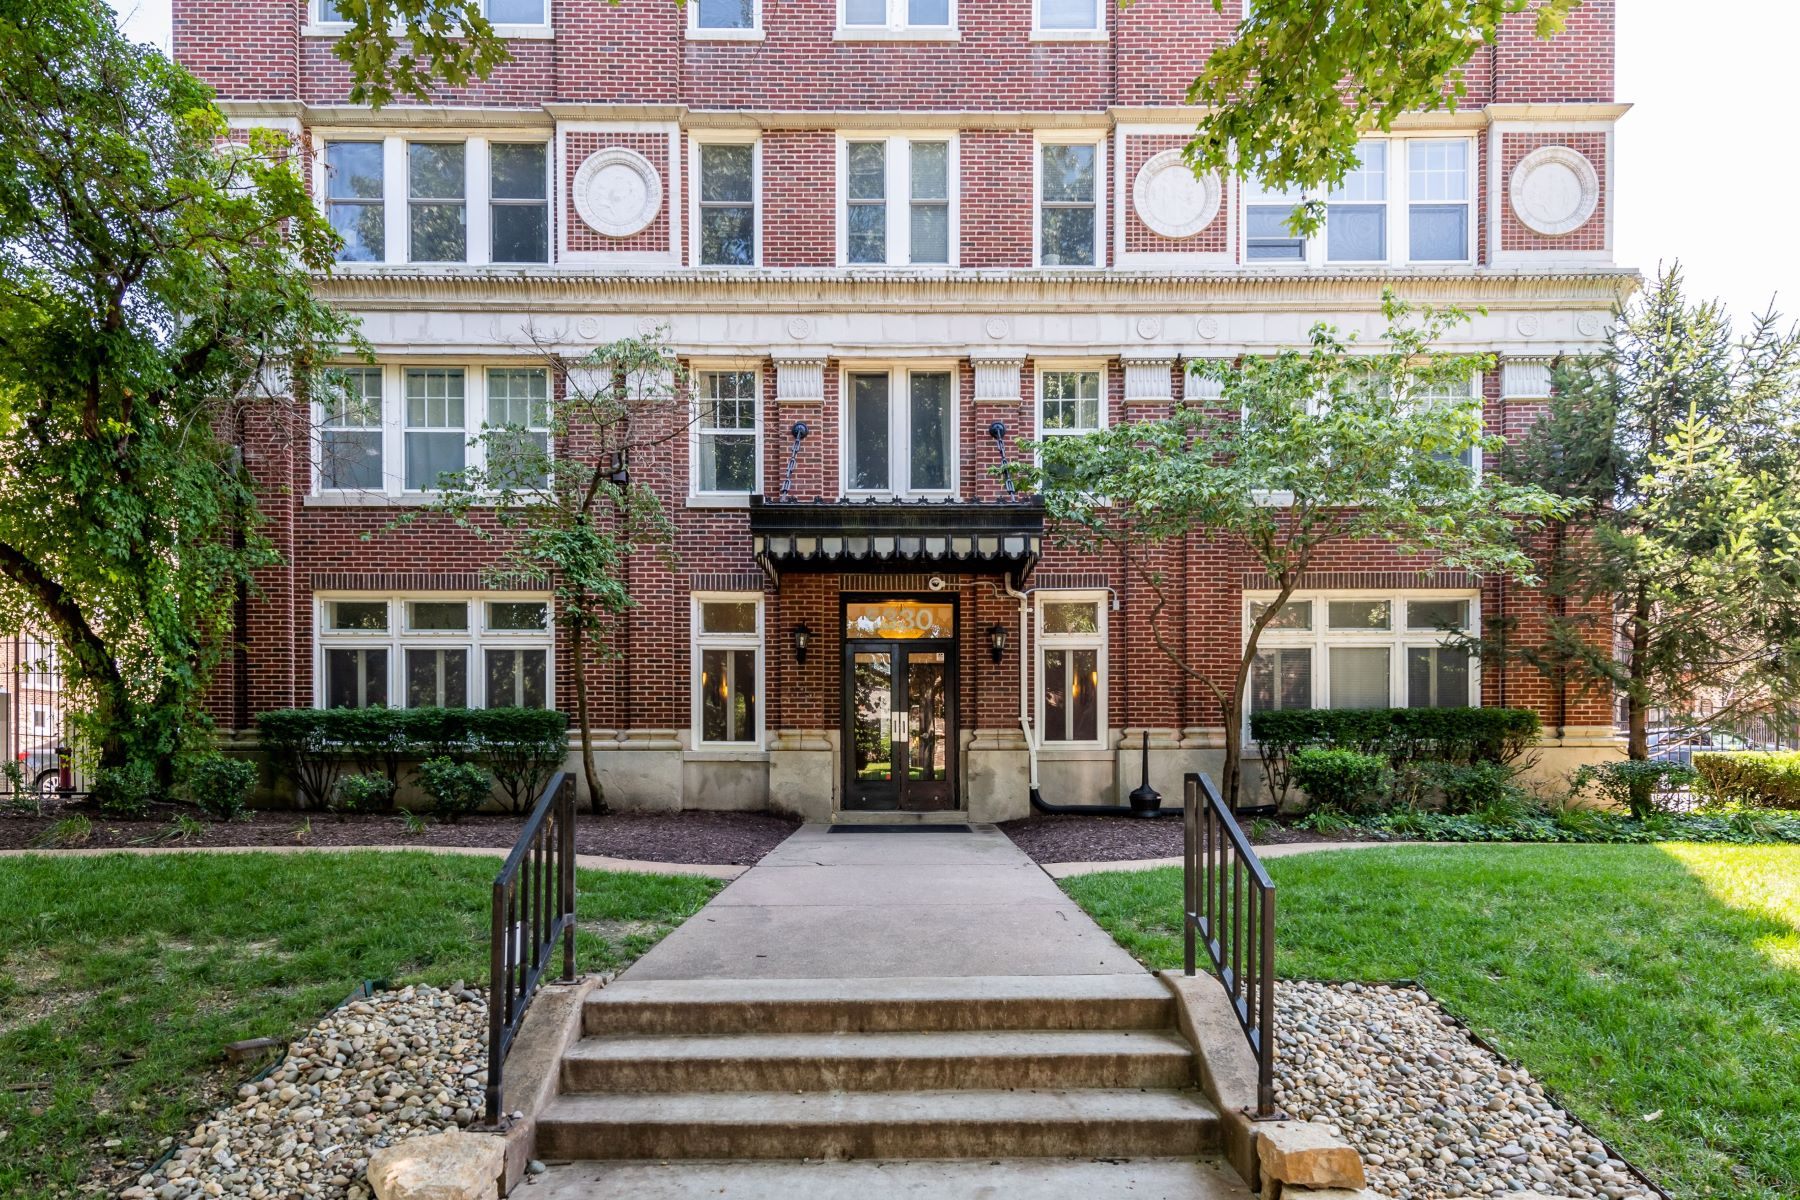 Condominiums for Rent at Peaceful City Living on Pershing Avenue 5330 Pershing Avenue #205 St. Louis, Missouri 63112 United States